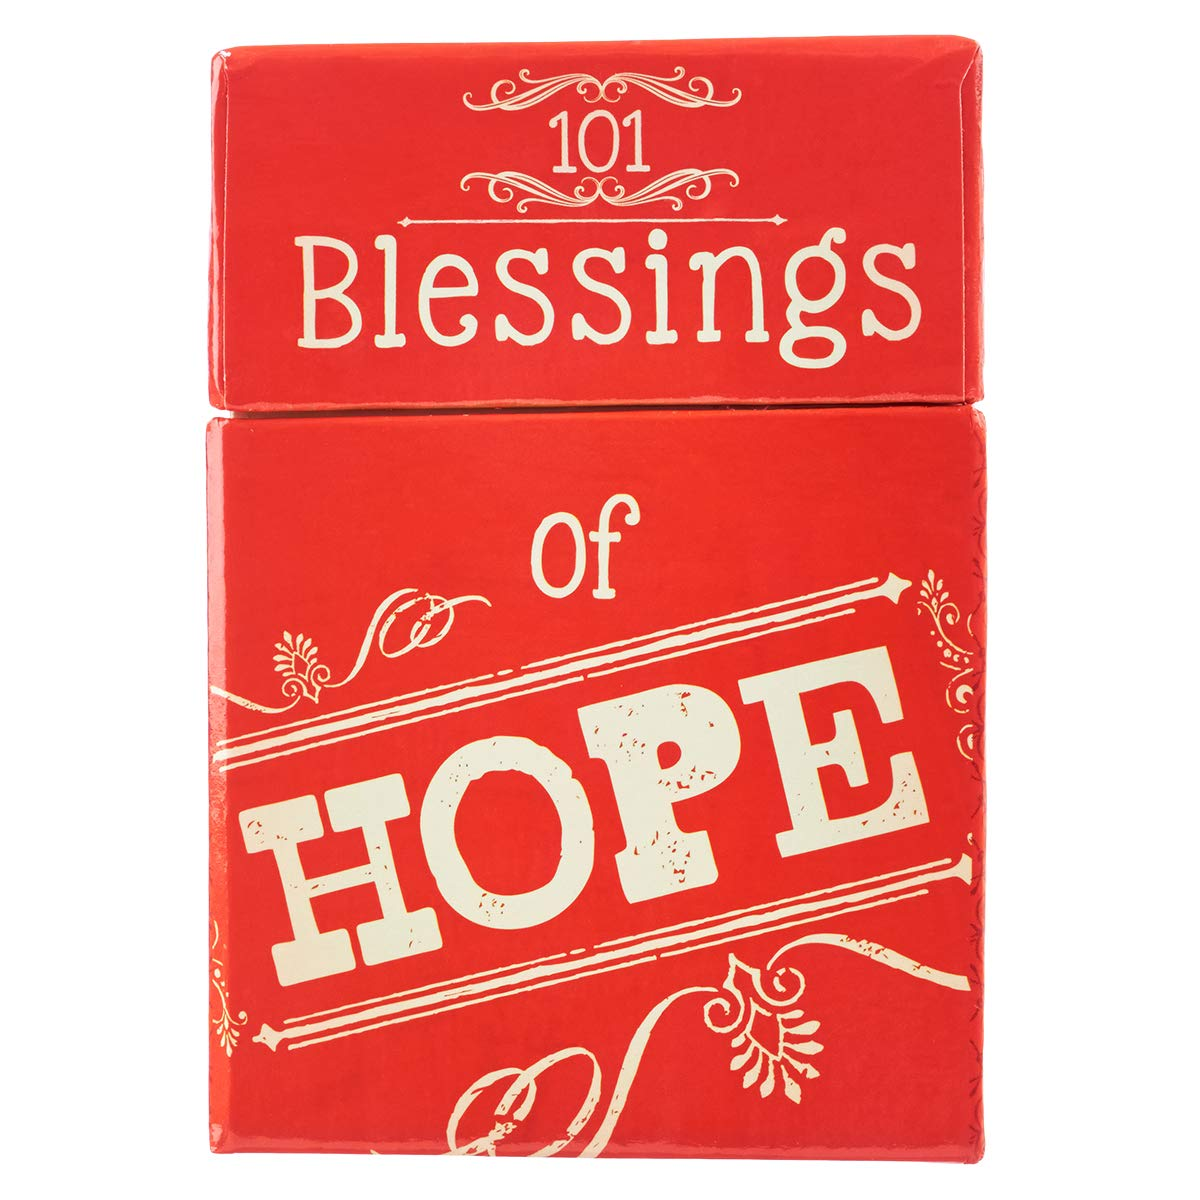 Read Online Retro Blessings 101 Blessings of Hope Cards - A Box of Blessings PDF